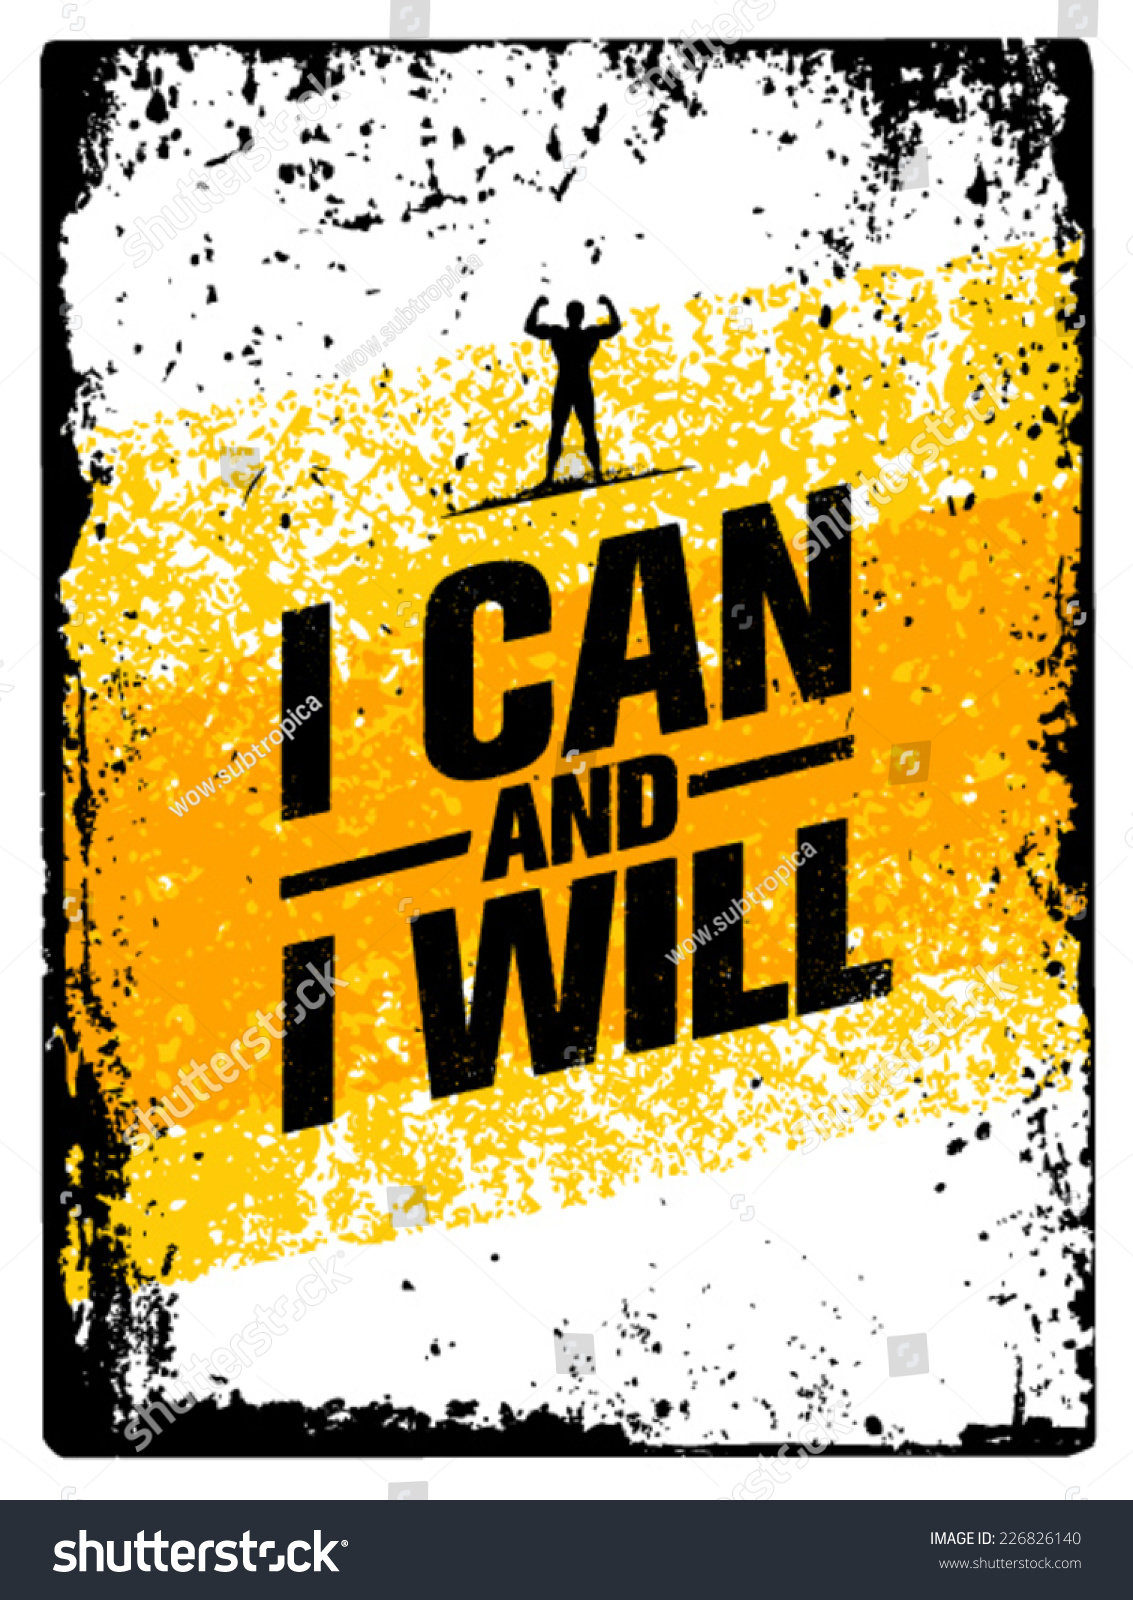 Can I Use A Computer During A Storm: I Can And I Will. Workout And Fitness Motivation Quote